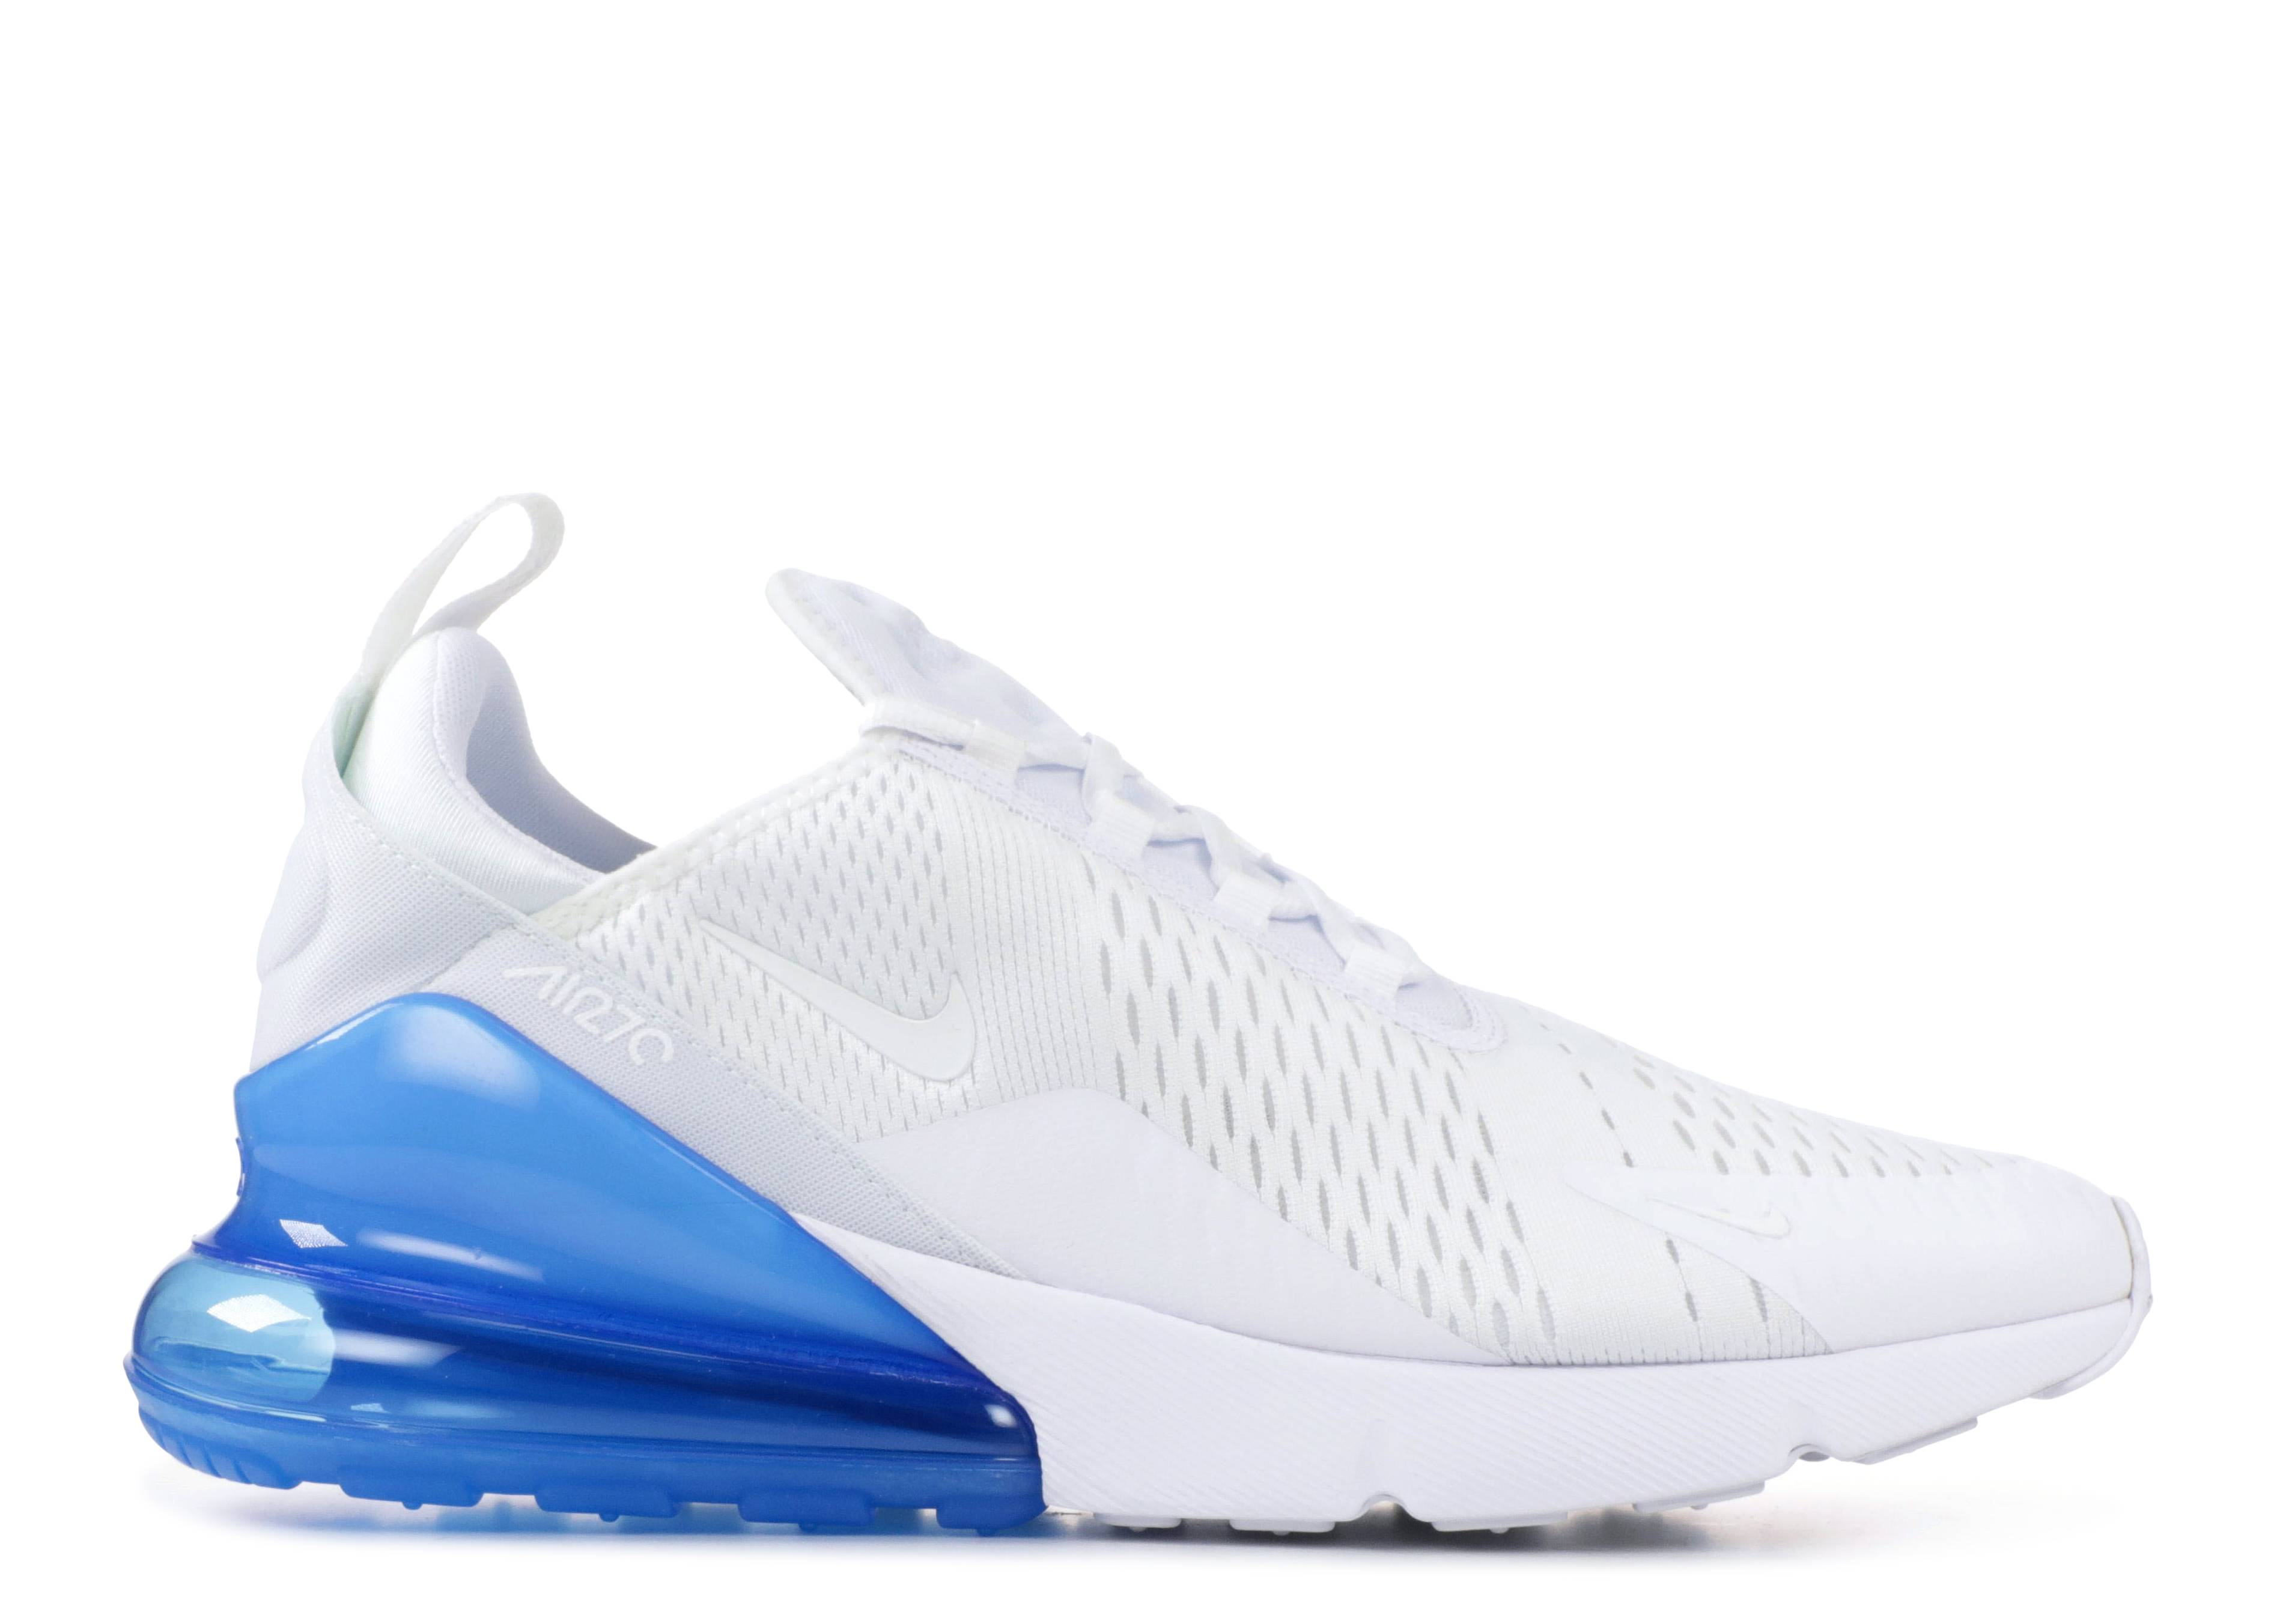 Air Max 270 White Photo Blue Nike Ah8050 105 White White